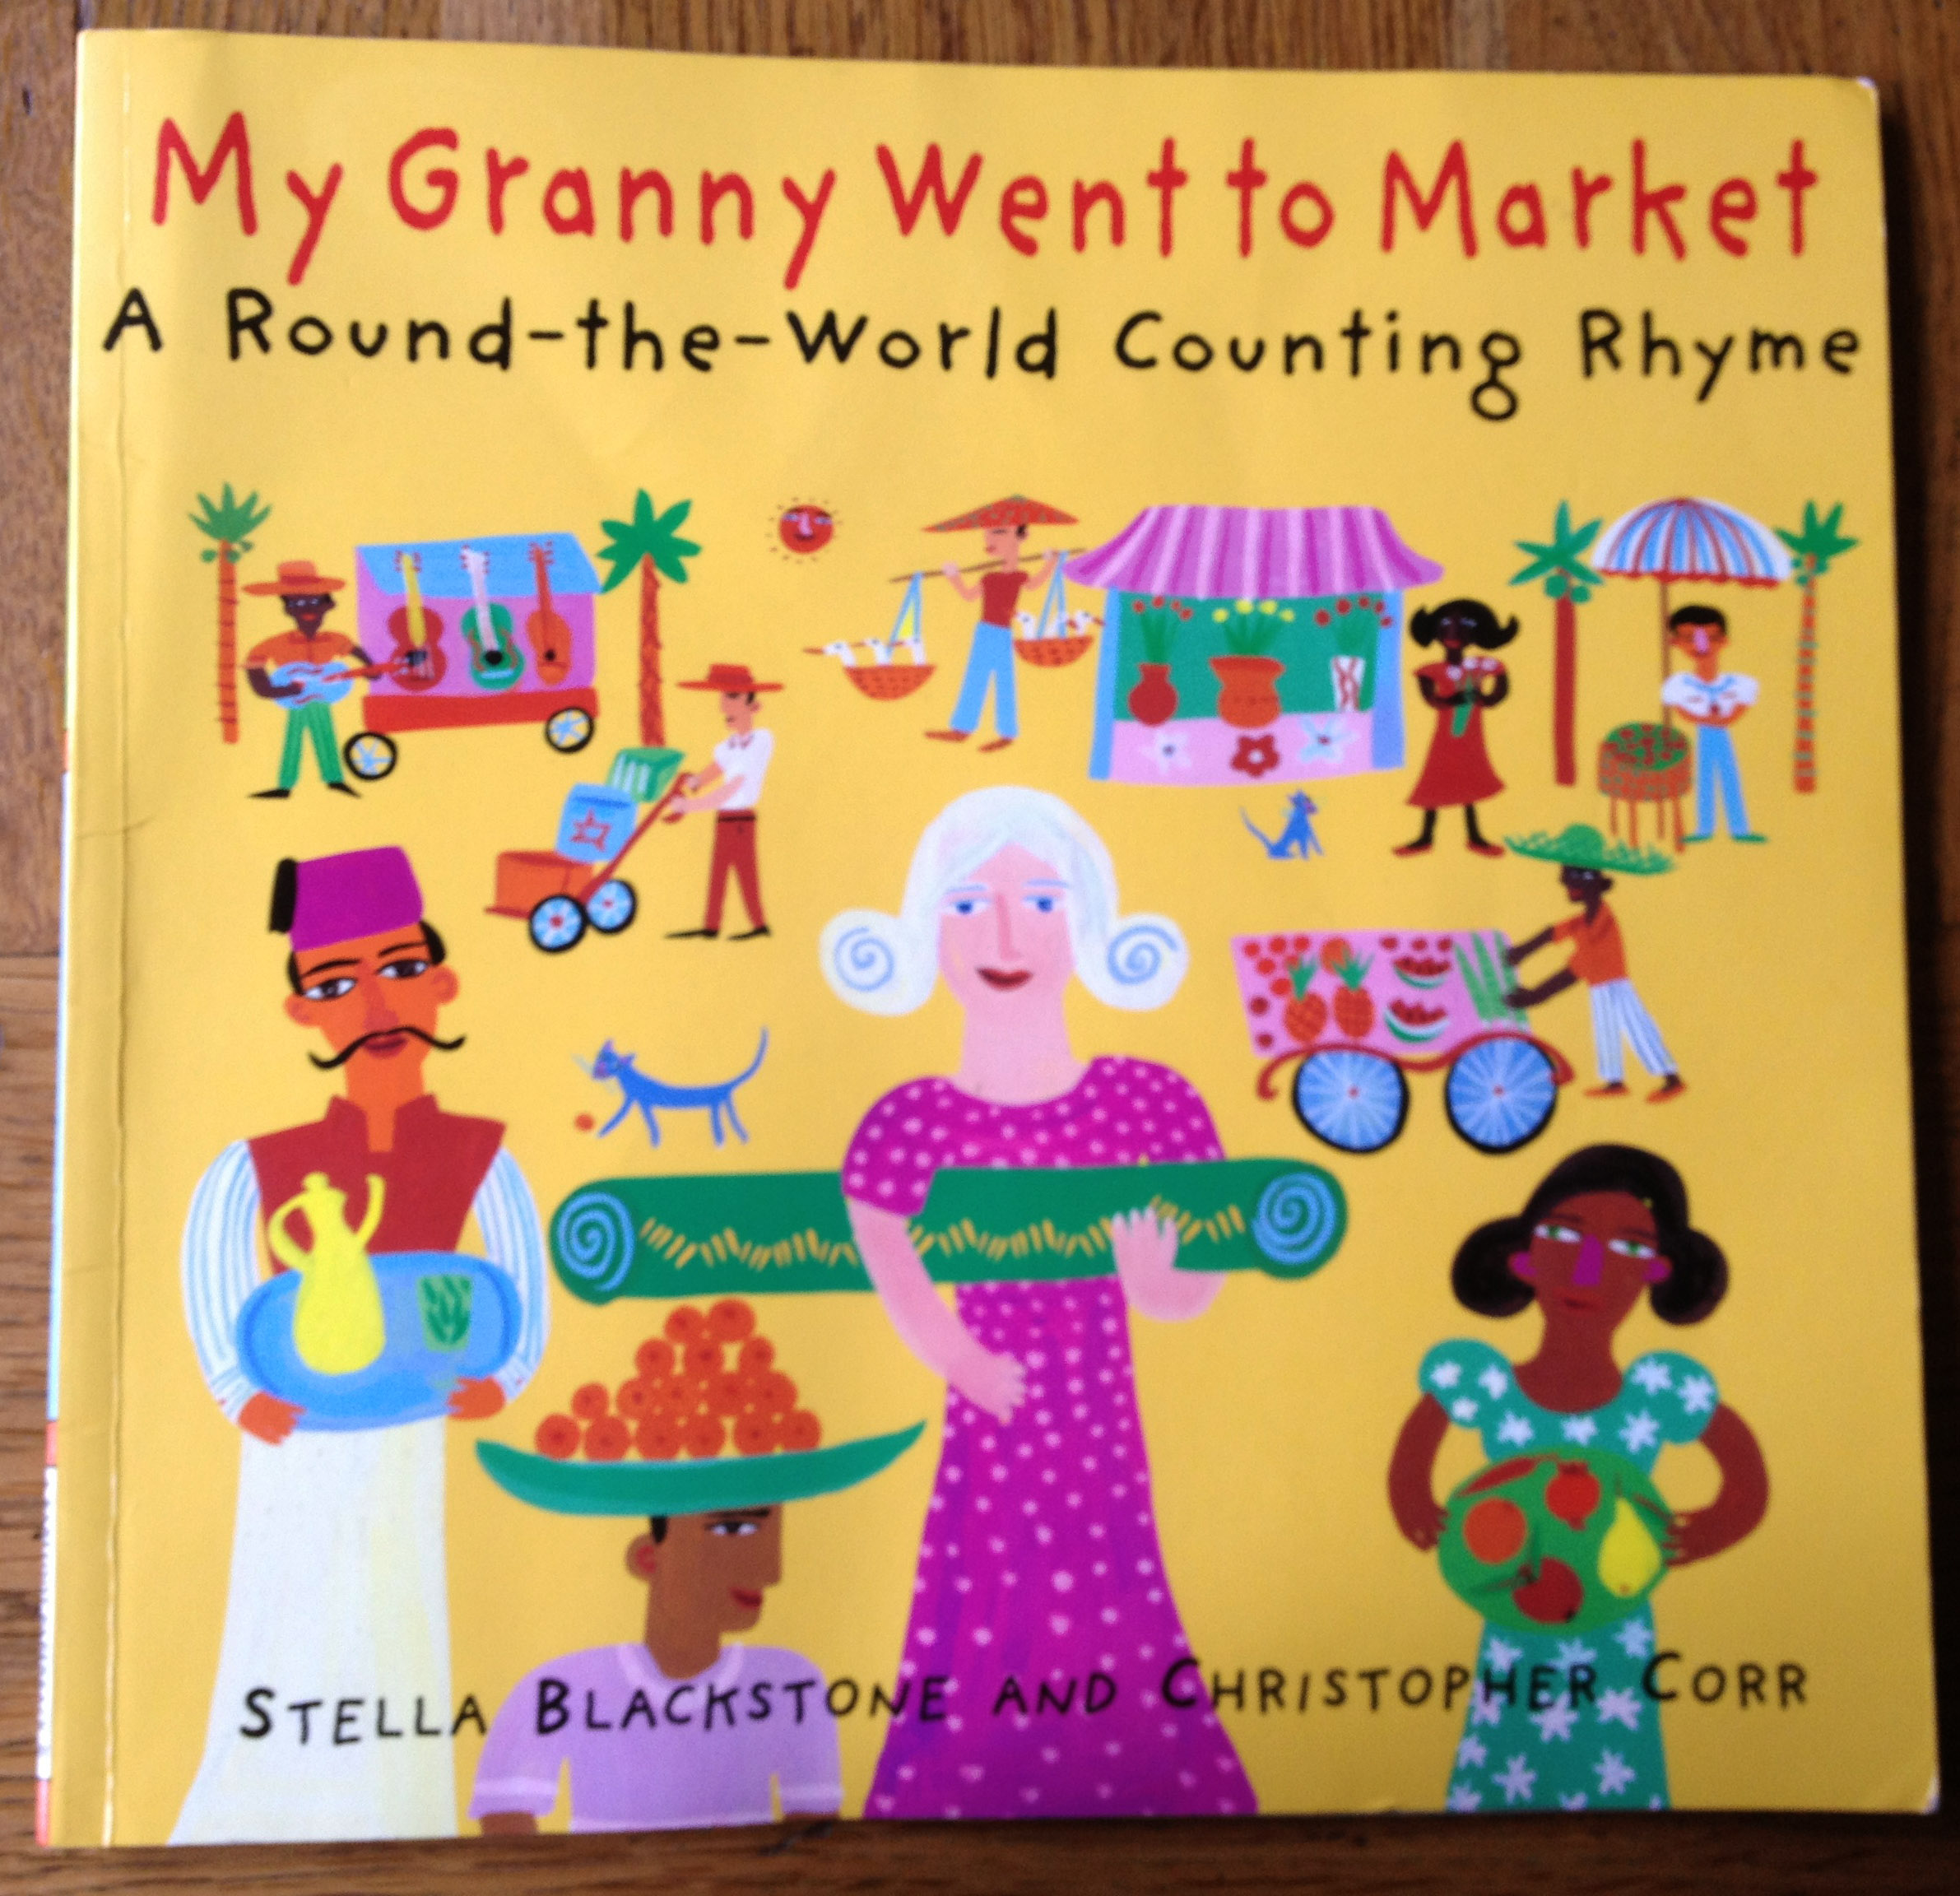 'My Granny Went to Market' by Stella Blackstone and Christopher Corr